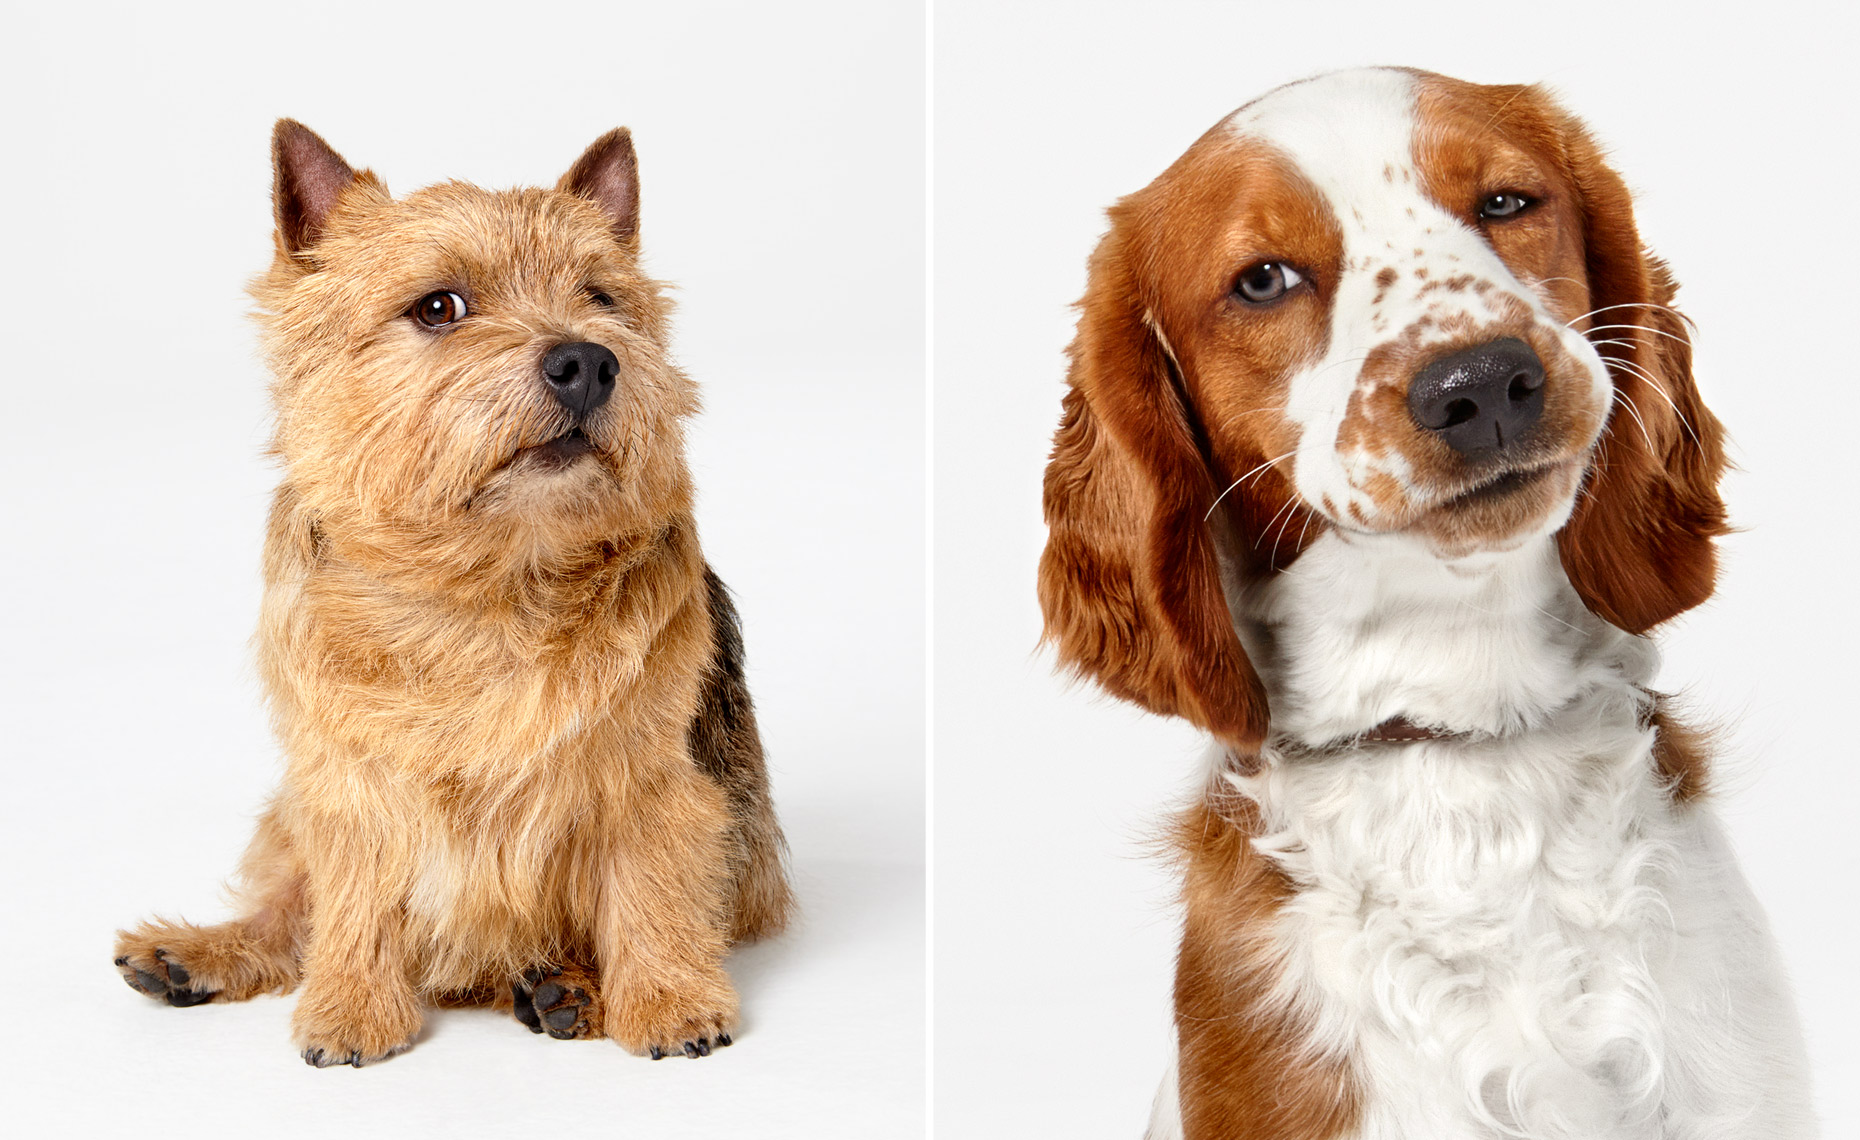 Norwich Terrier and Springer Spaniel portraits